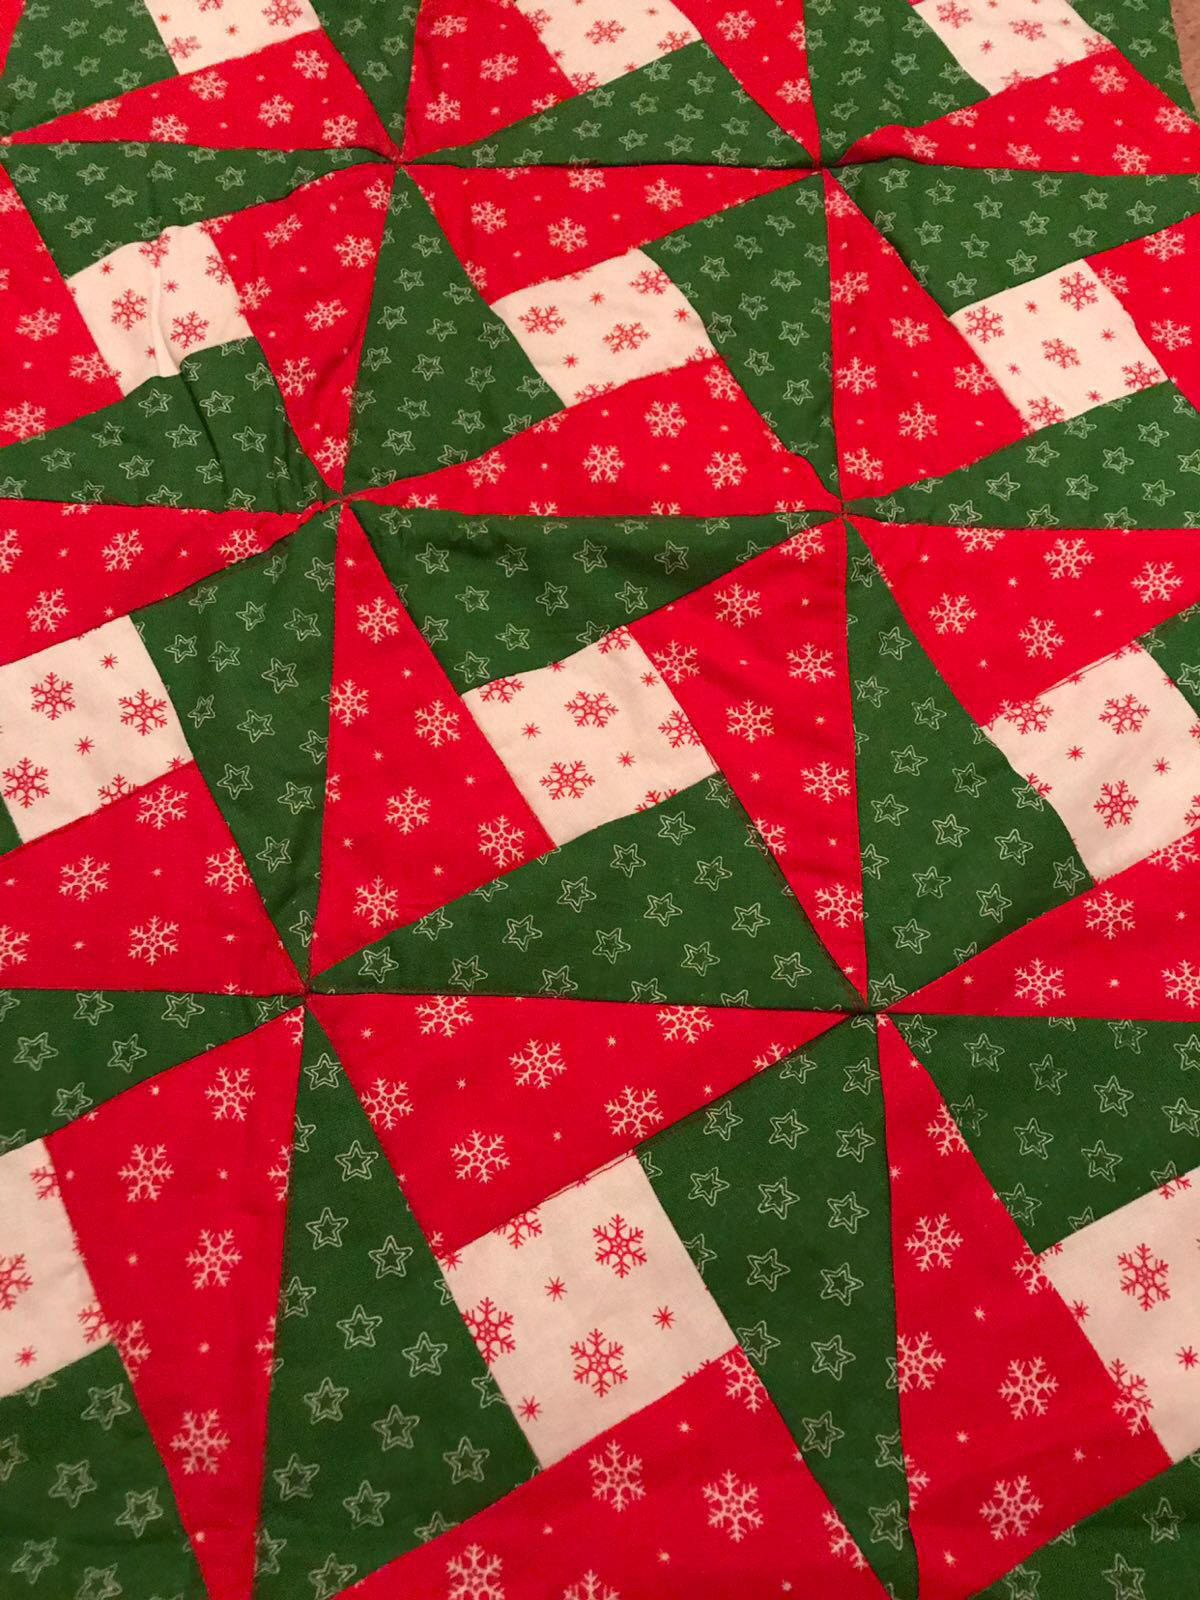 wide-table-runner-xmas-close-up